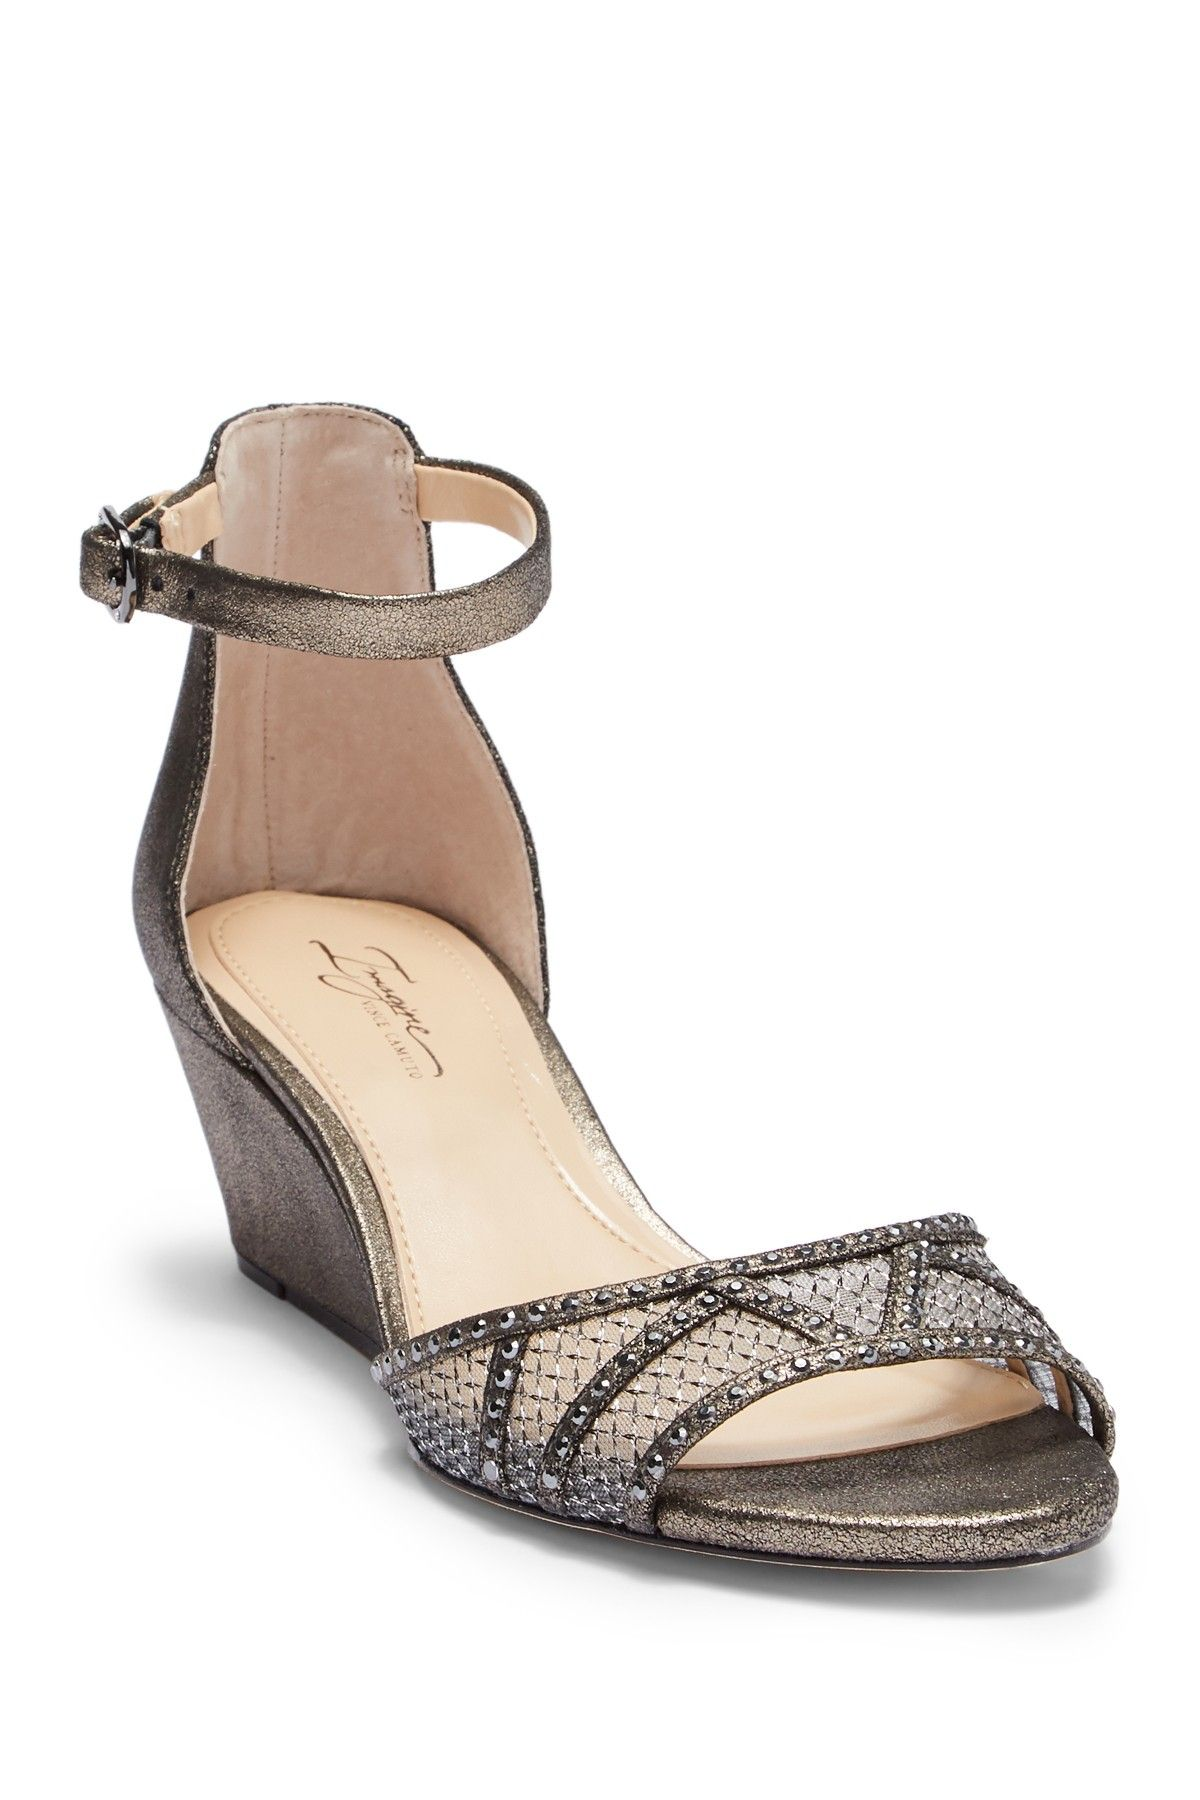 59fb686a5 Imagine Vince Camuto - Joan Ankle Strap Wedge Sandal is now 50% off. Free  Shipping on orders over $100.